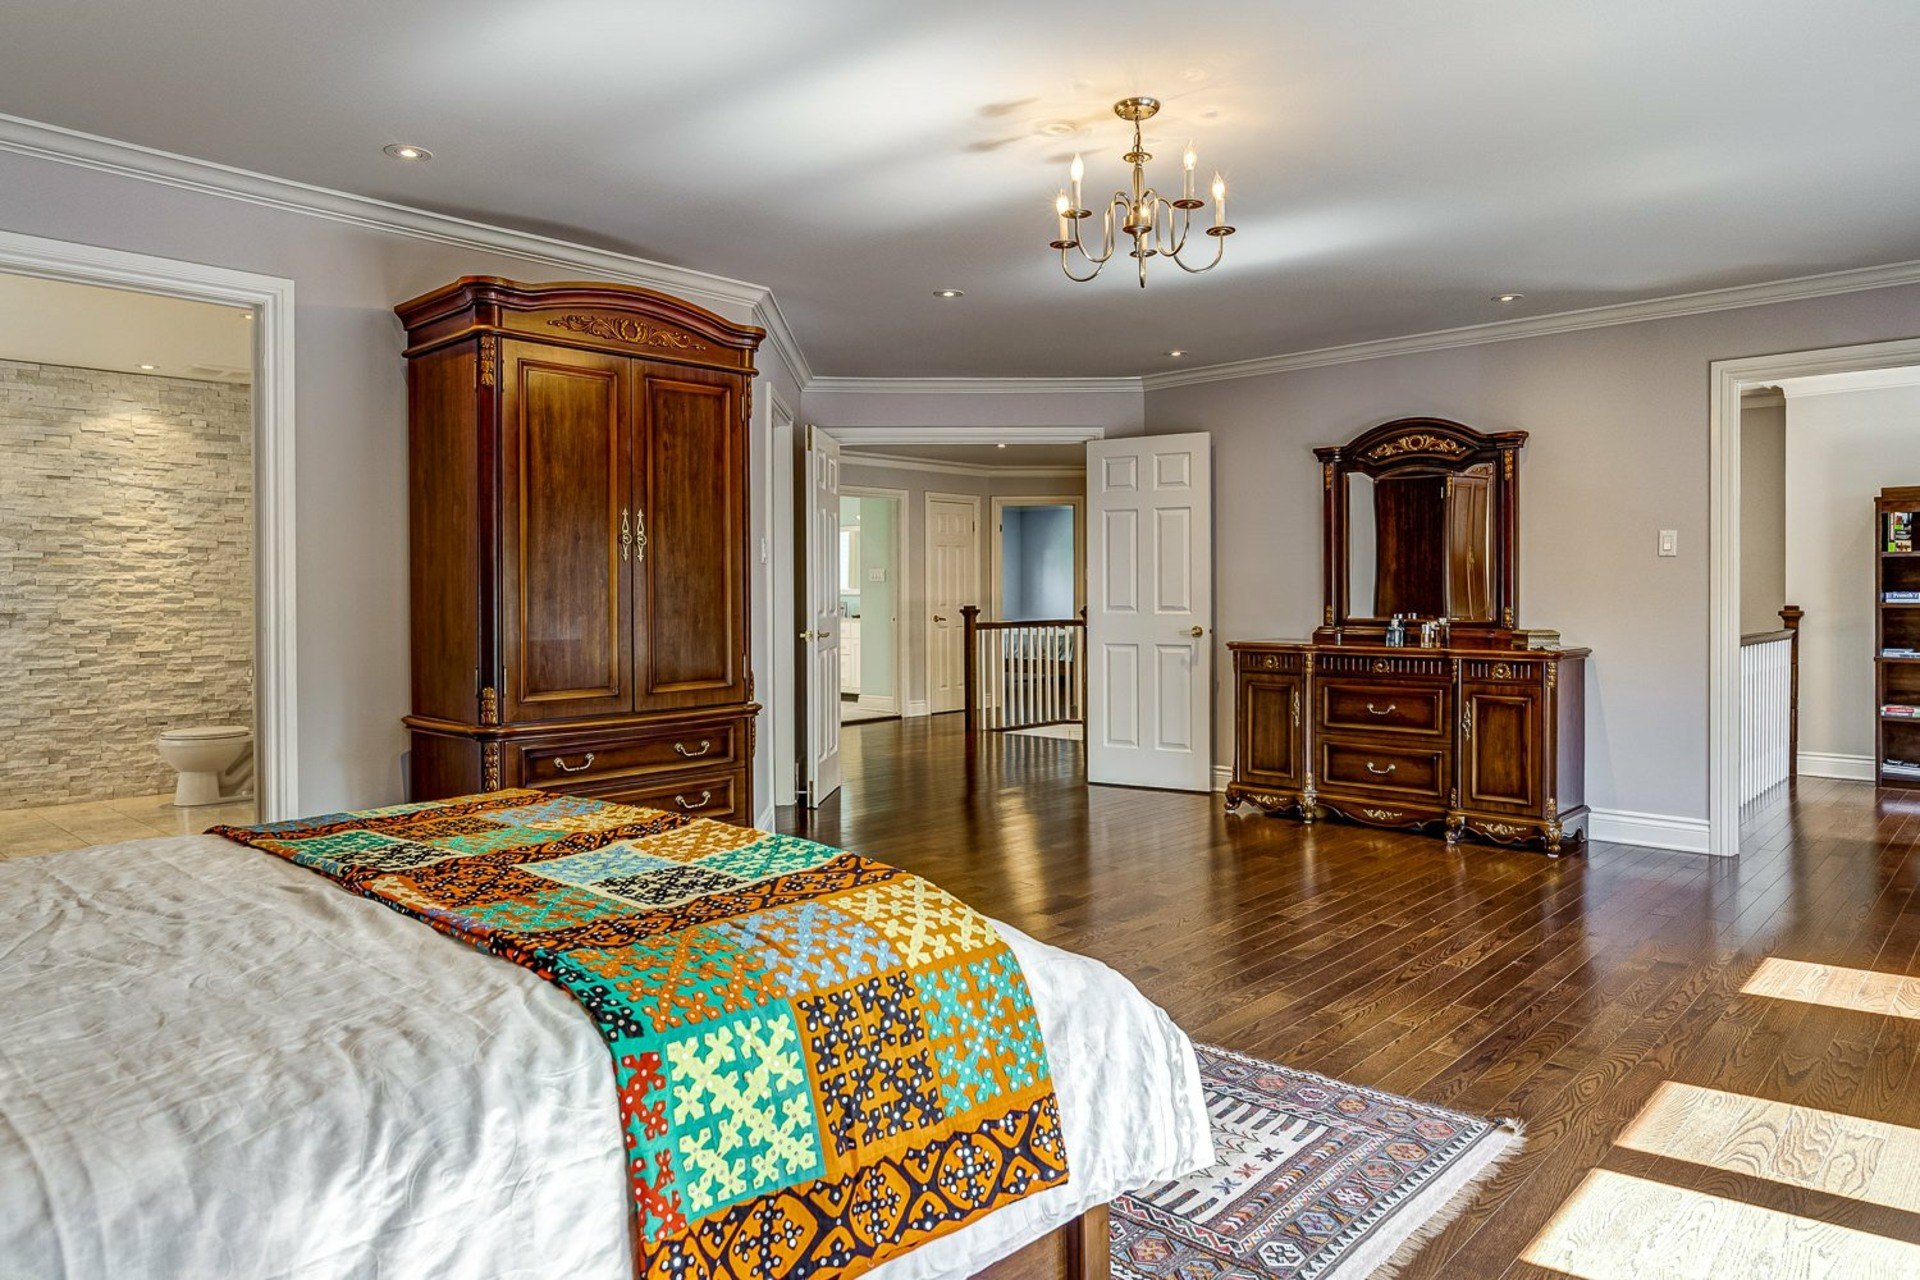 image 15 - House For sale Beaconsfield - 11 rooms